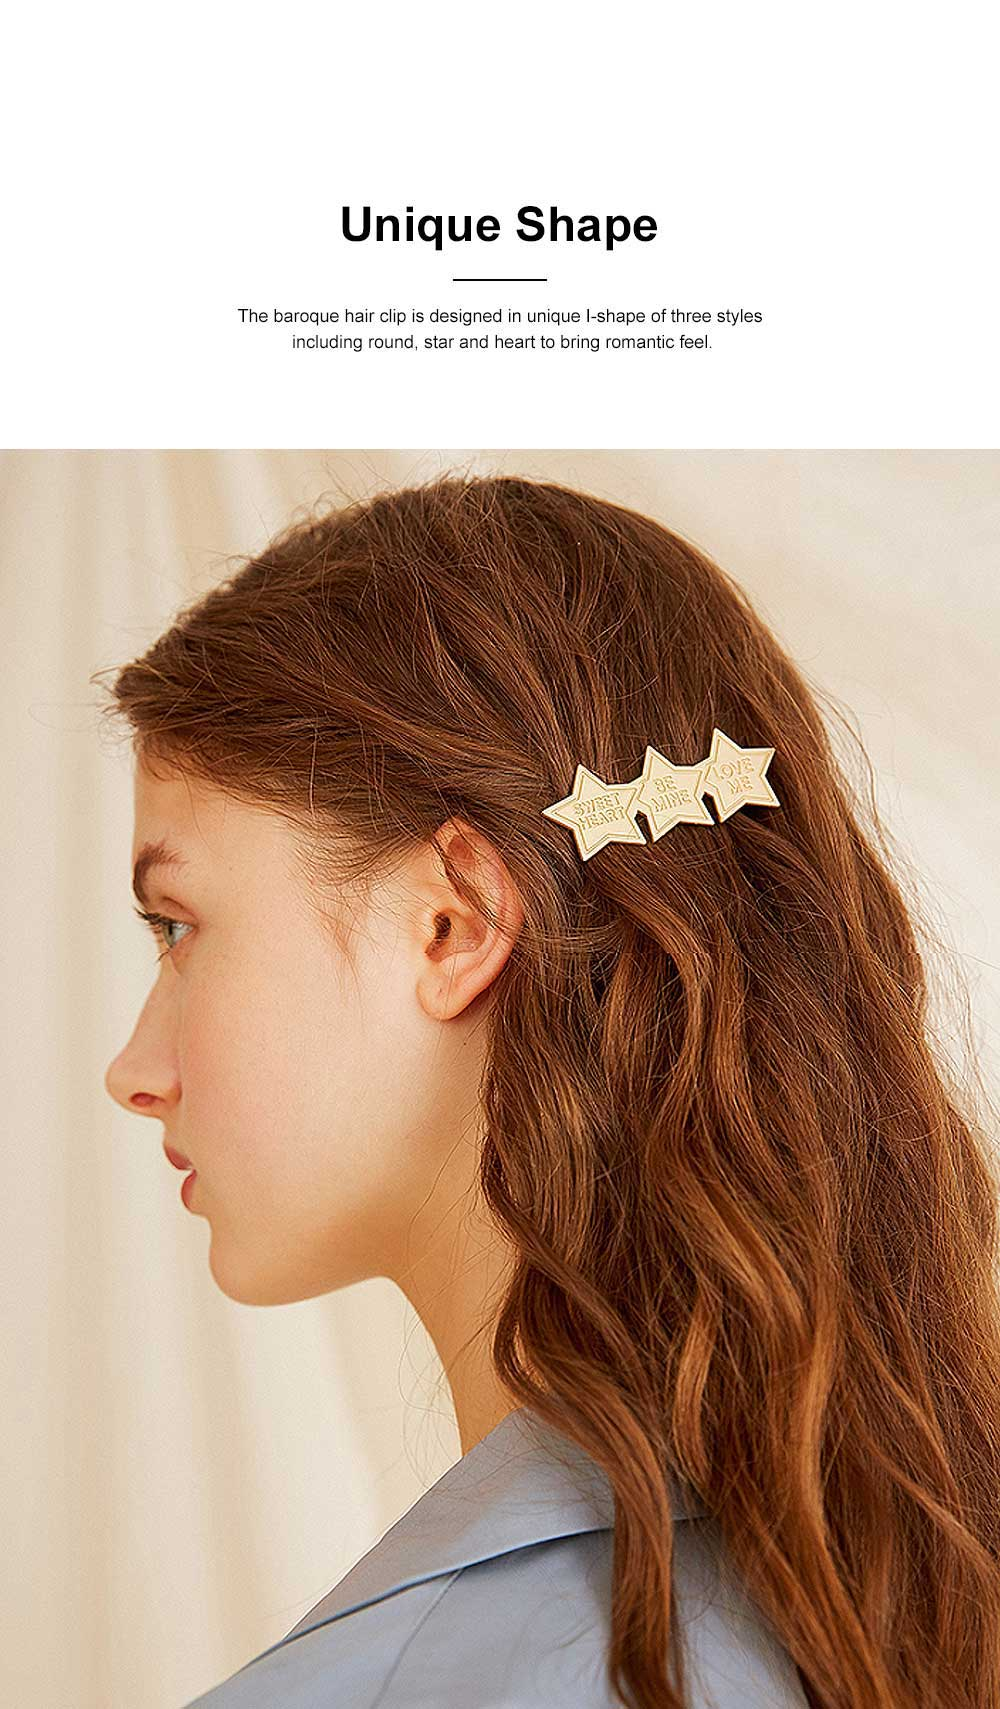 Baroque Hair Clip for Girls Gold-plated Alloy Bobby Pin Baroque Hair Dresses Retro I-shape Hairpin Star-like Side Clip 1